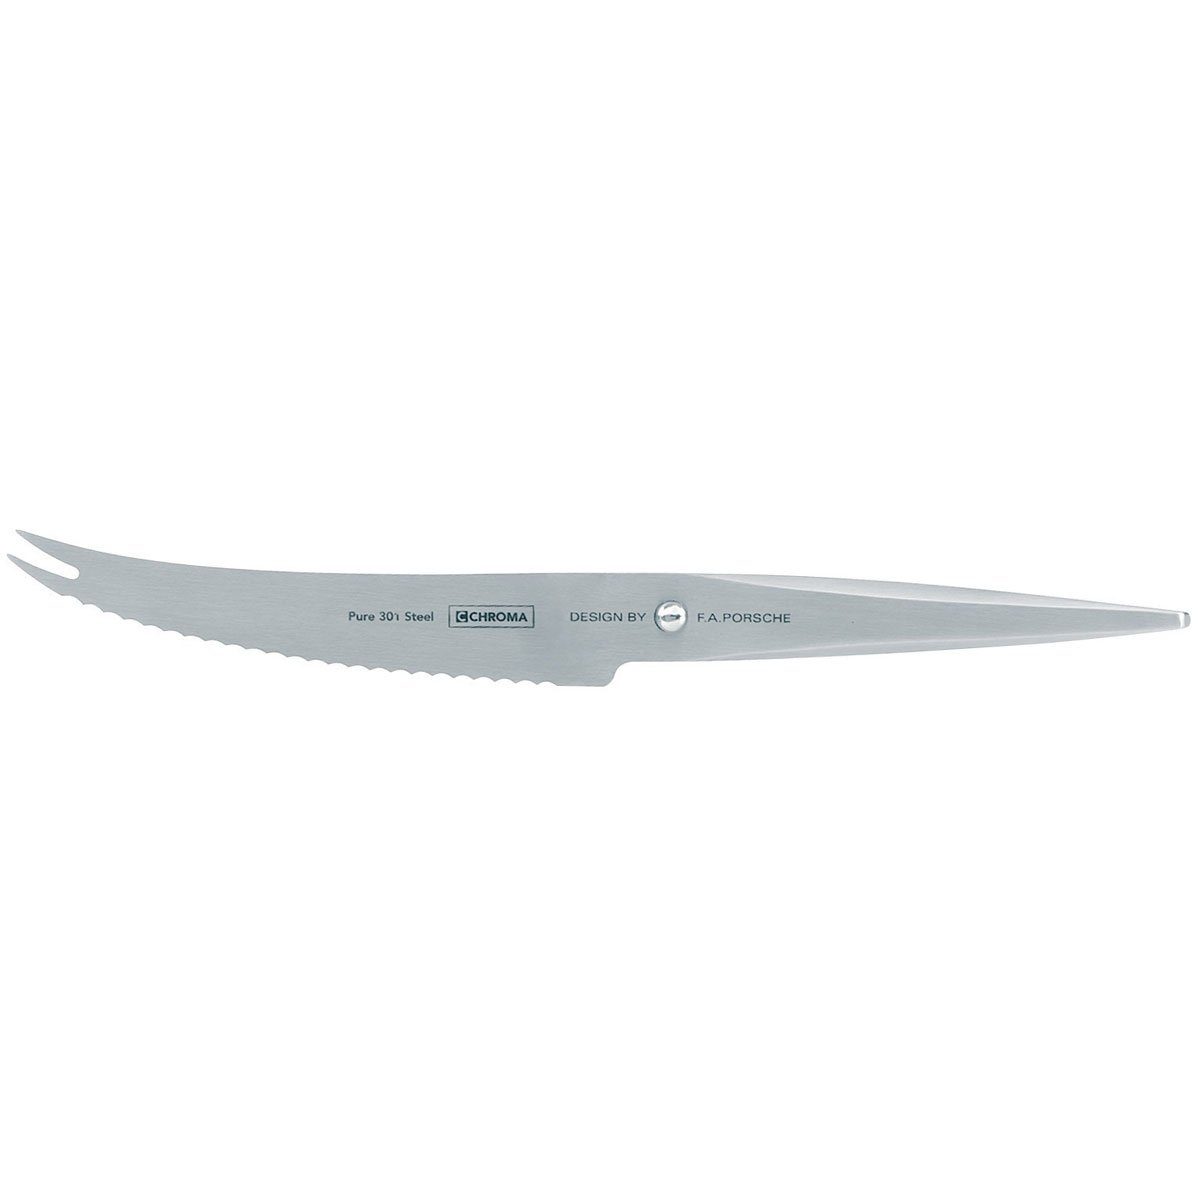 Chroma 5019311910965 Type 301 Designed by F.A. Porsche 5 3/4 Inch Tomato Knife, one size, silver by Chroma